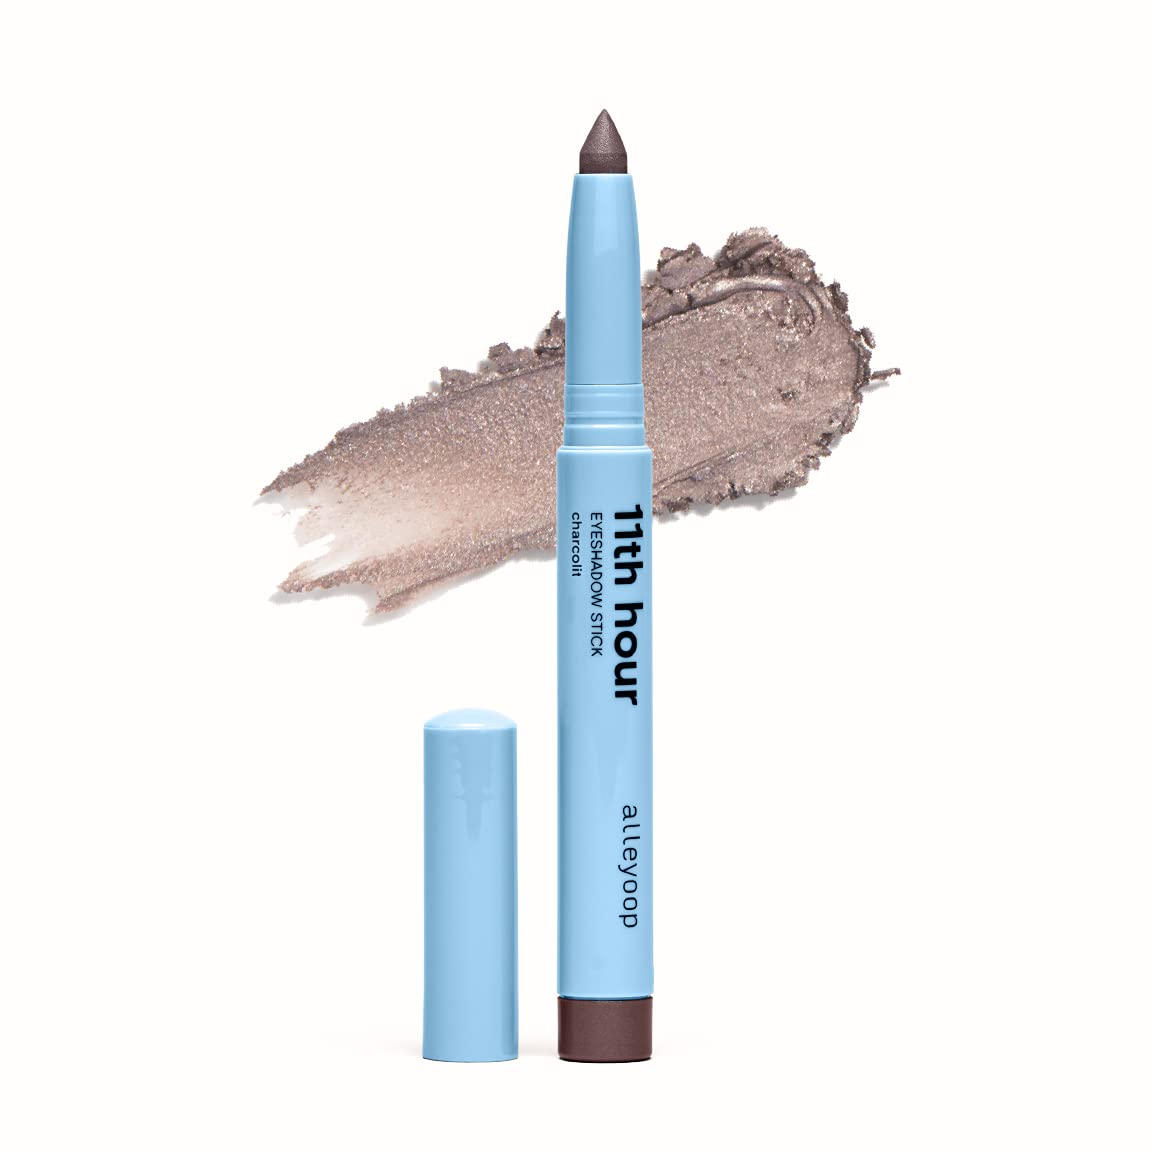 Alleyoop 11th Hour Cream Eyeshadow Sticks - Charcolit (Shimmer) - Award-winning - Smudge-proof and Crease-proof for Over 11 Hours - Easy-To-Apply and Compact for Travel - Cruelty-Free and Vegan : Beauty & Personal Care